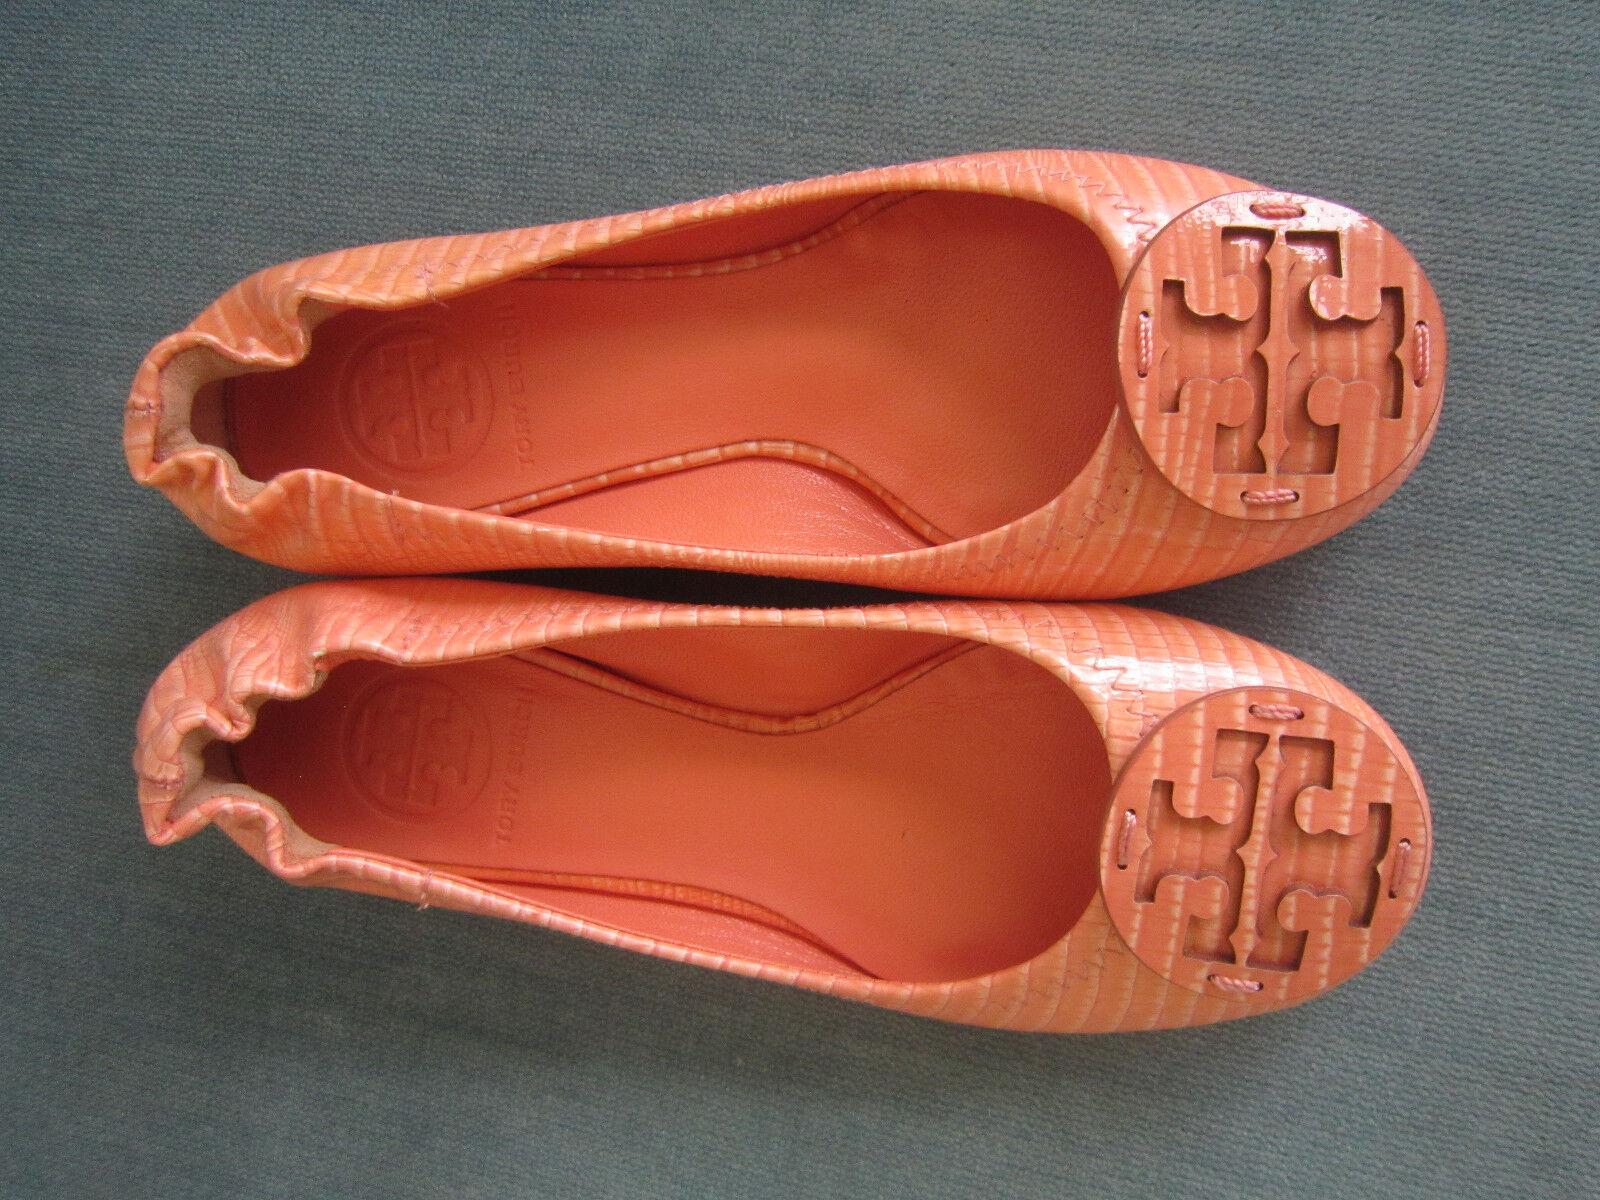 Tory Burch Reva orange Ballet Ballet Ballet Flats Leather Size 4.5M New 2c4f14